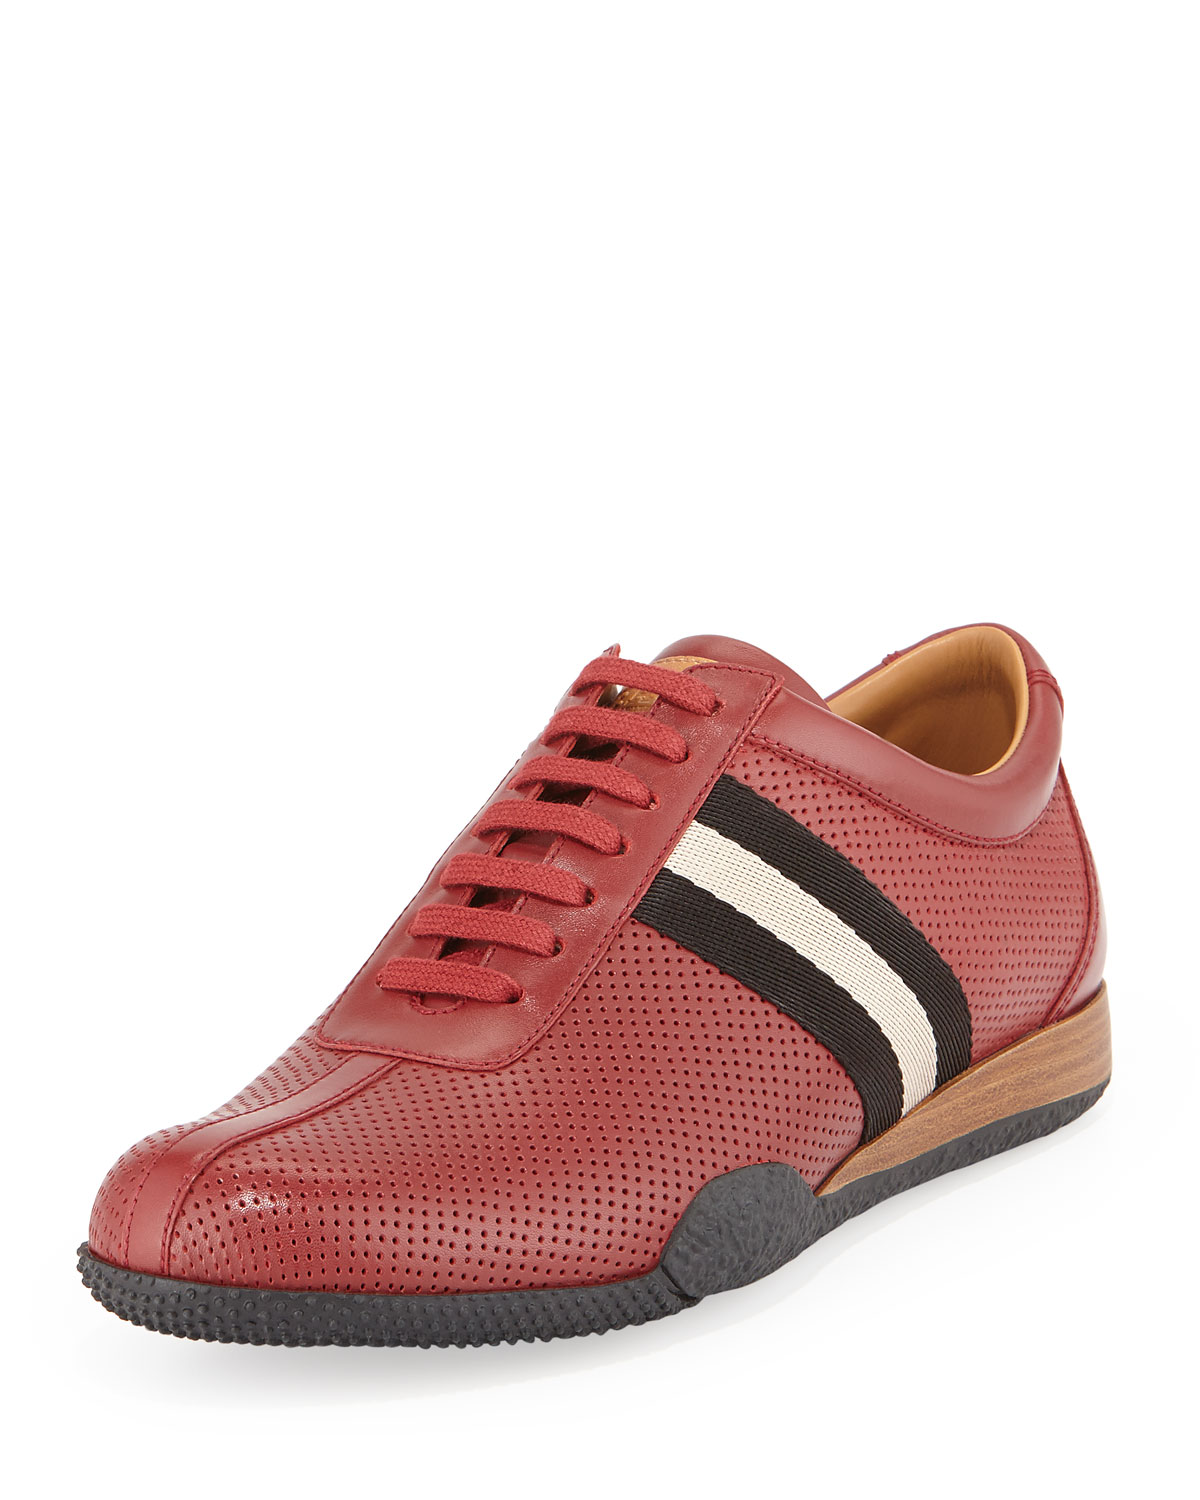 Bally Frenz Perforated Low-Top Sneaker